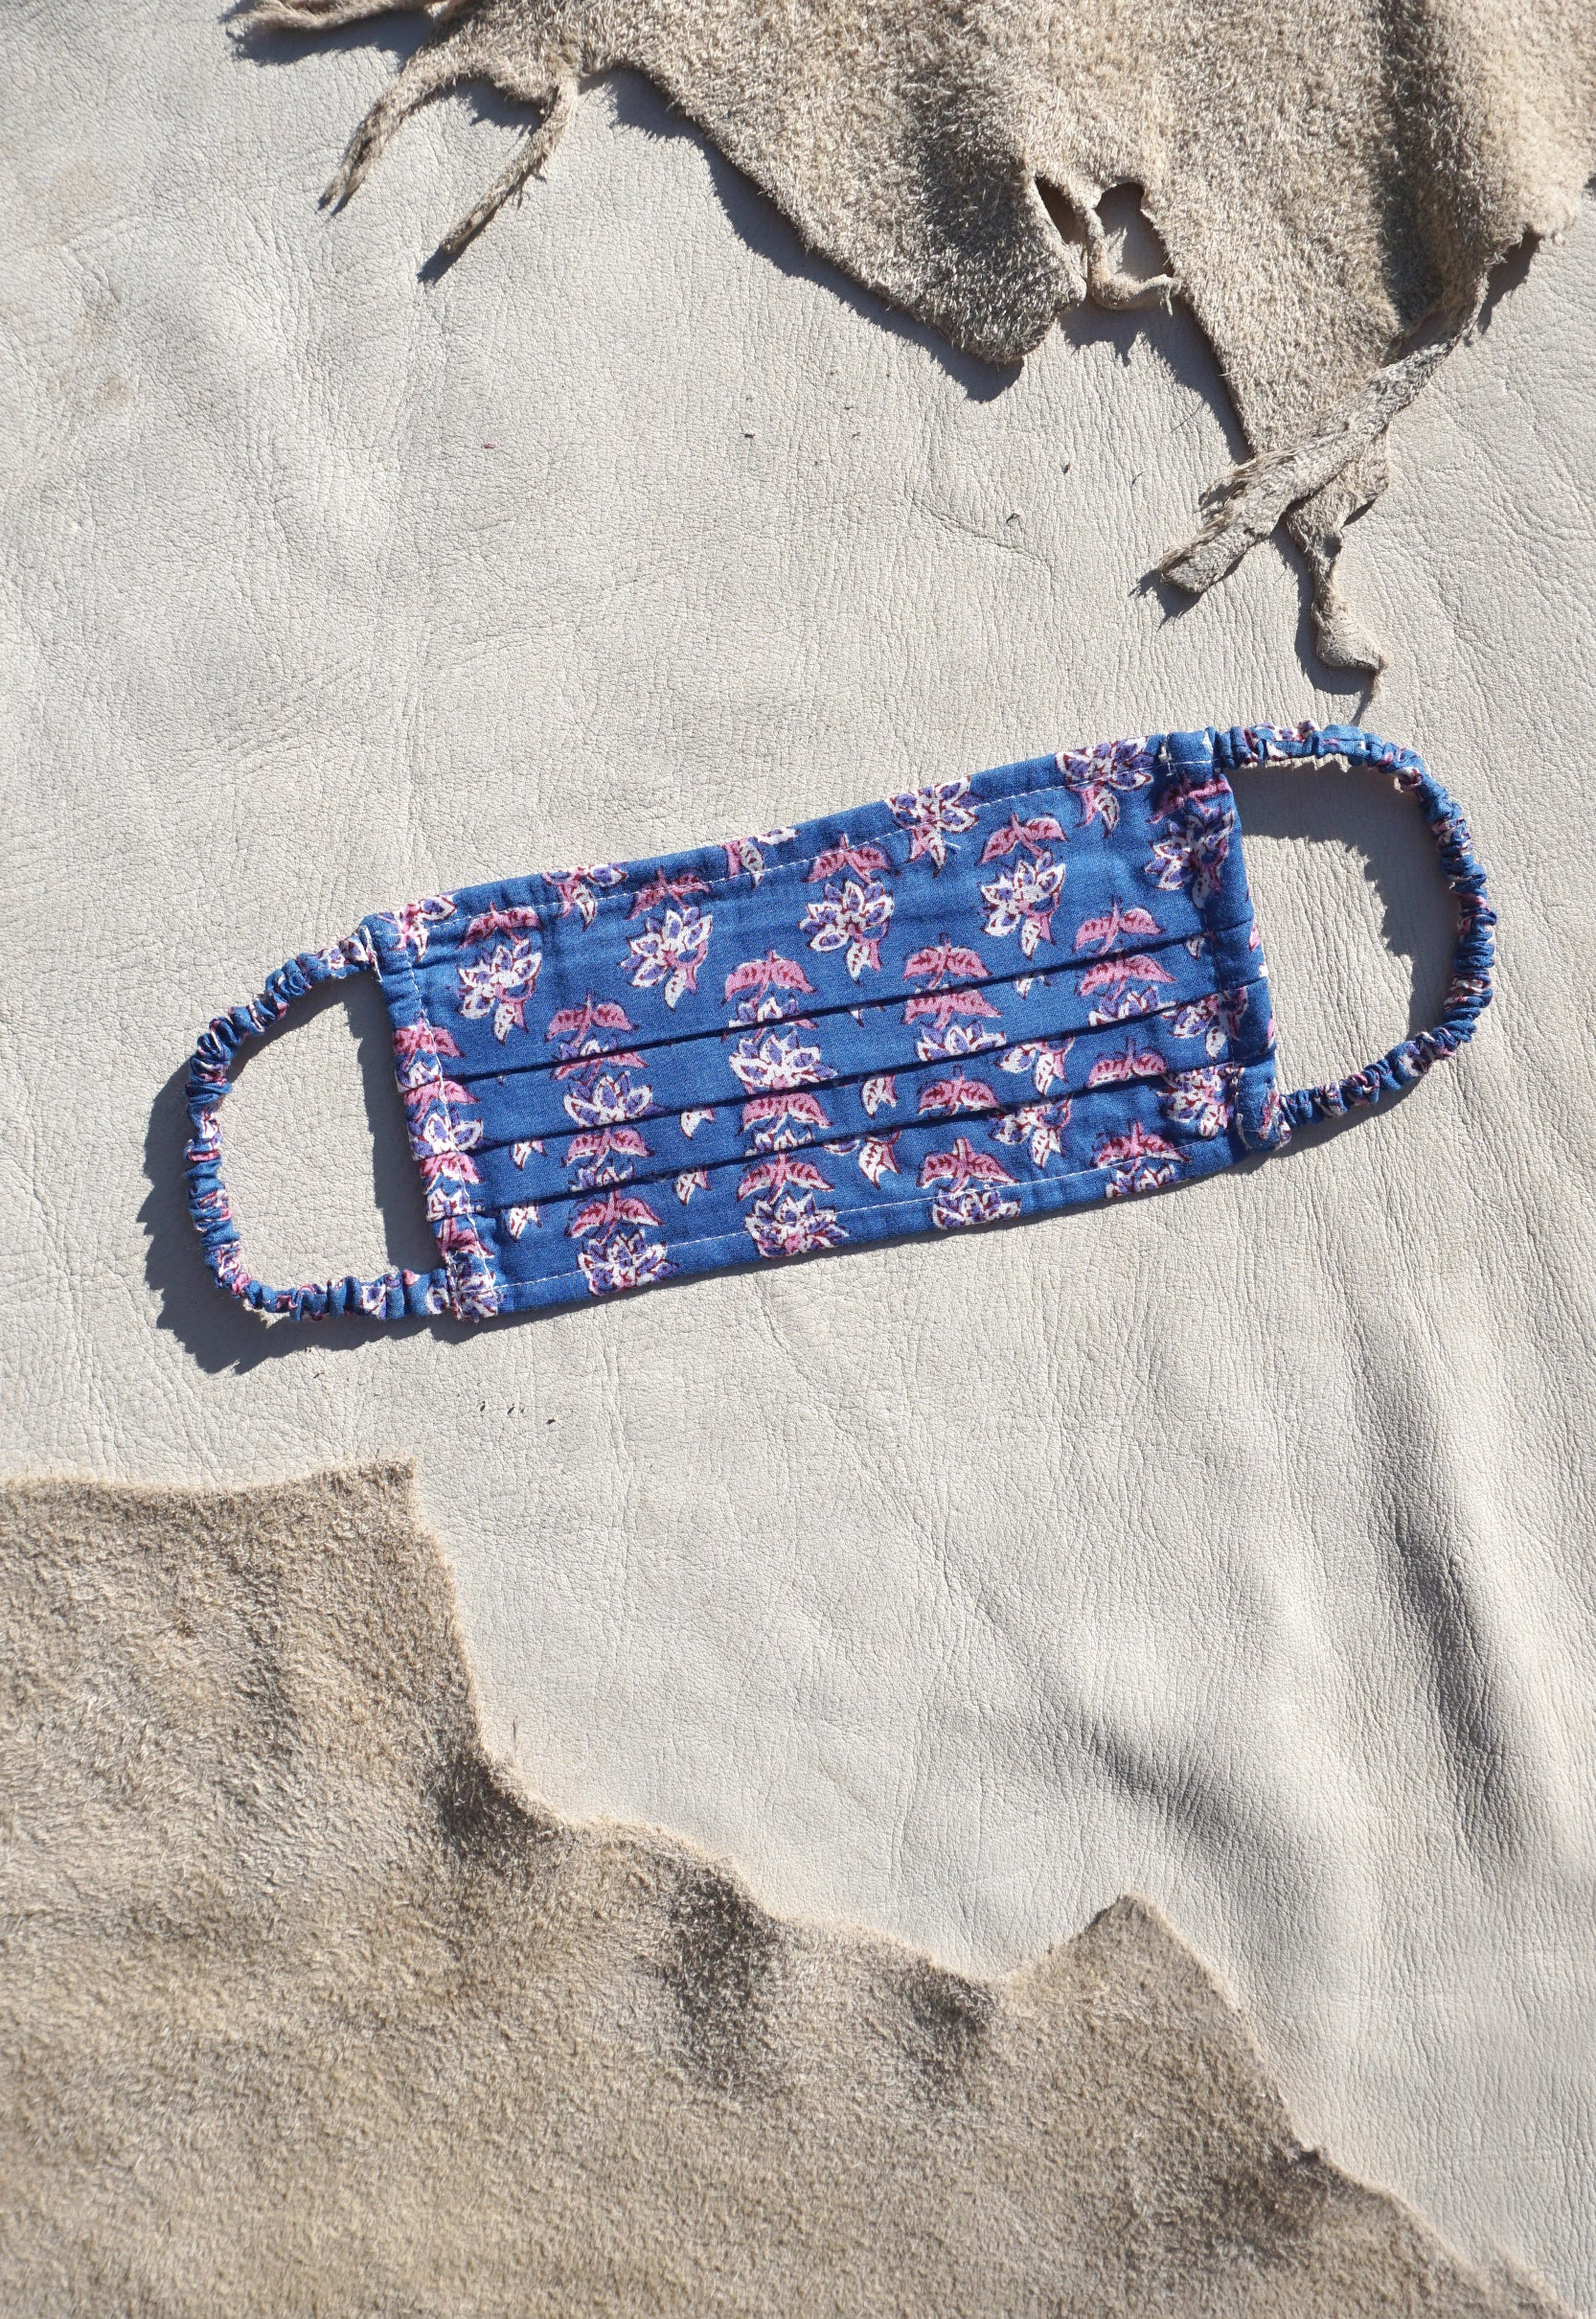 Indian Cotton Idylwild Blockprint Face Mask